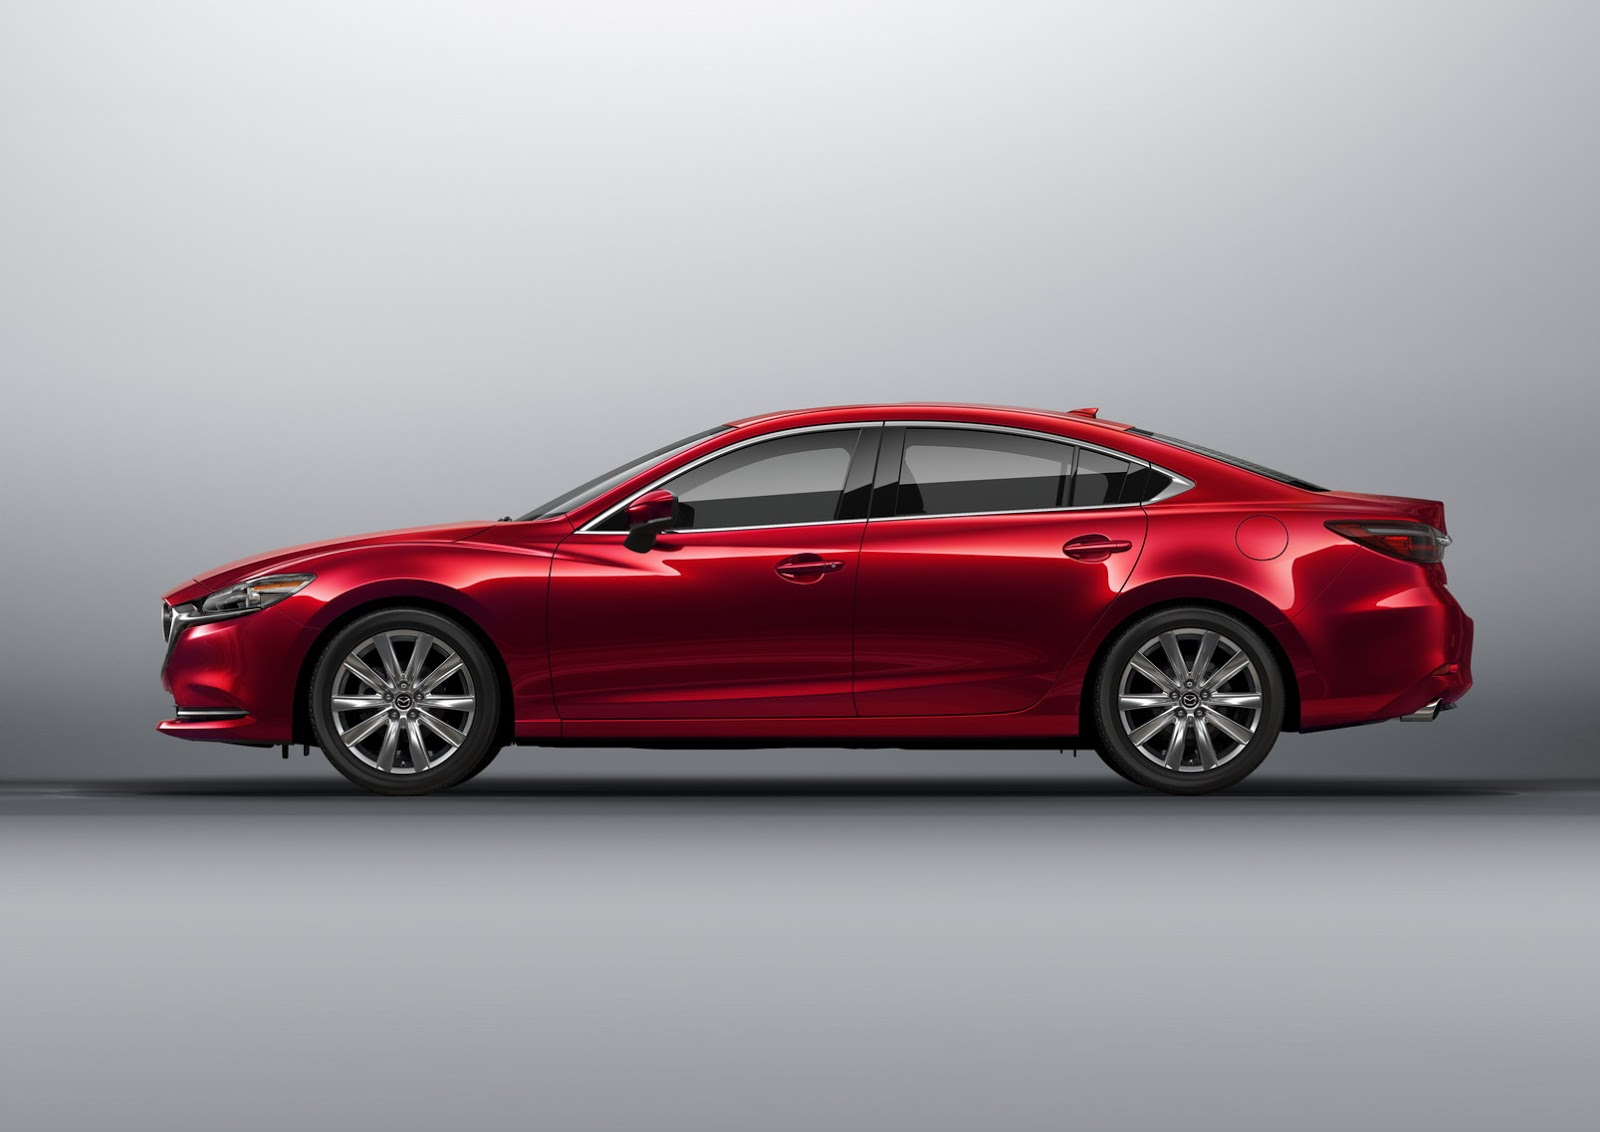 refreshed 2018 mazda6 gets 250 hp turbo engine and new interior autoevolution. Black Bedroom Furniture Sets. Home Design Ideas